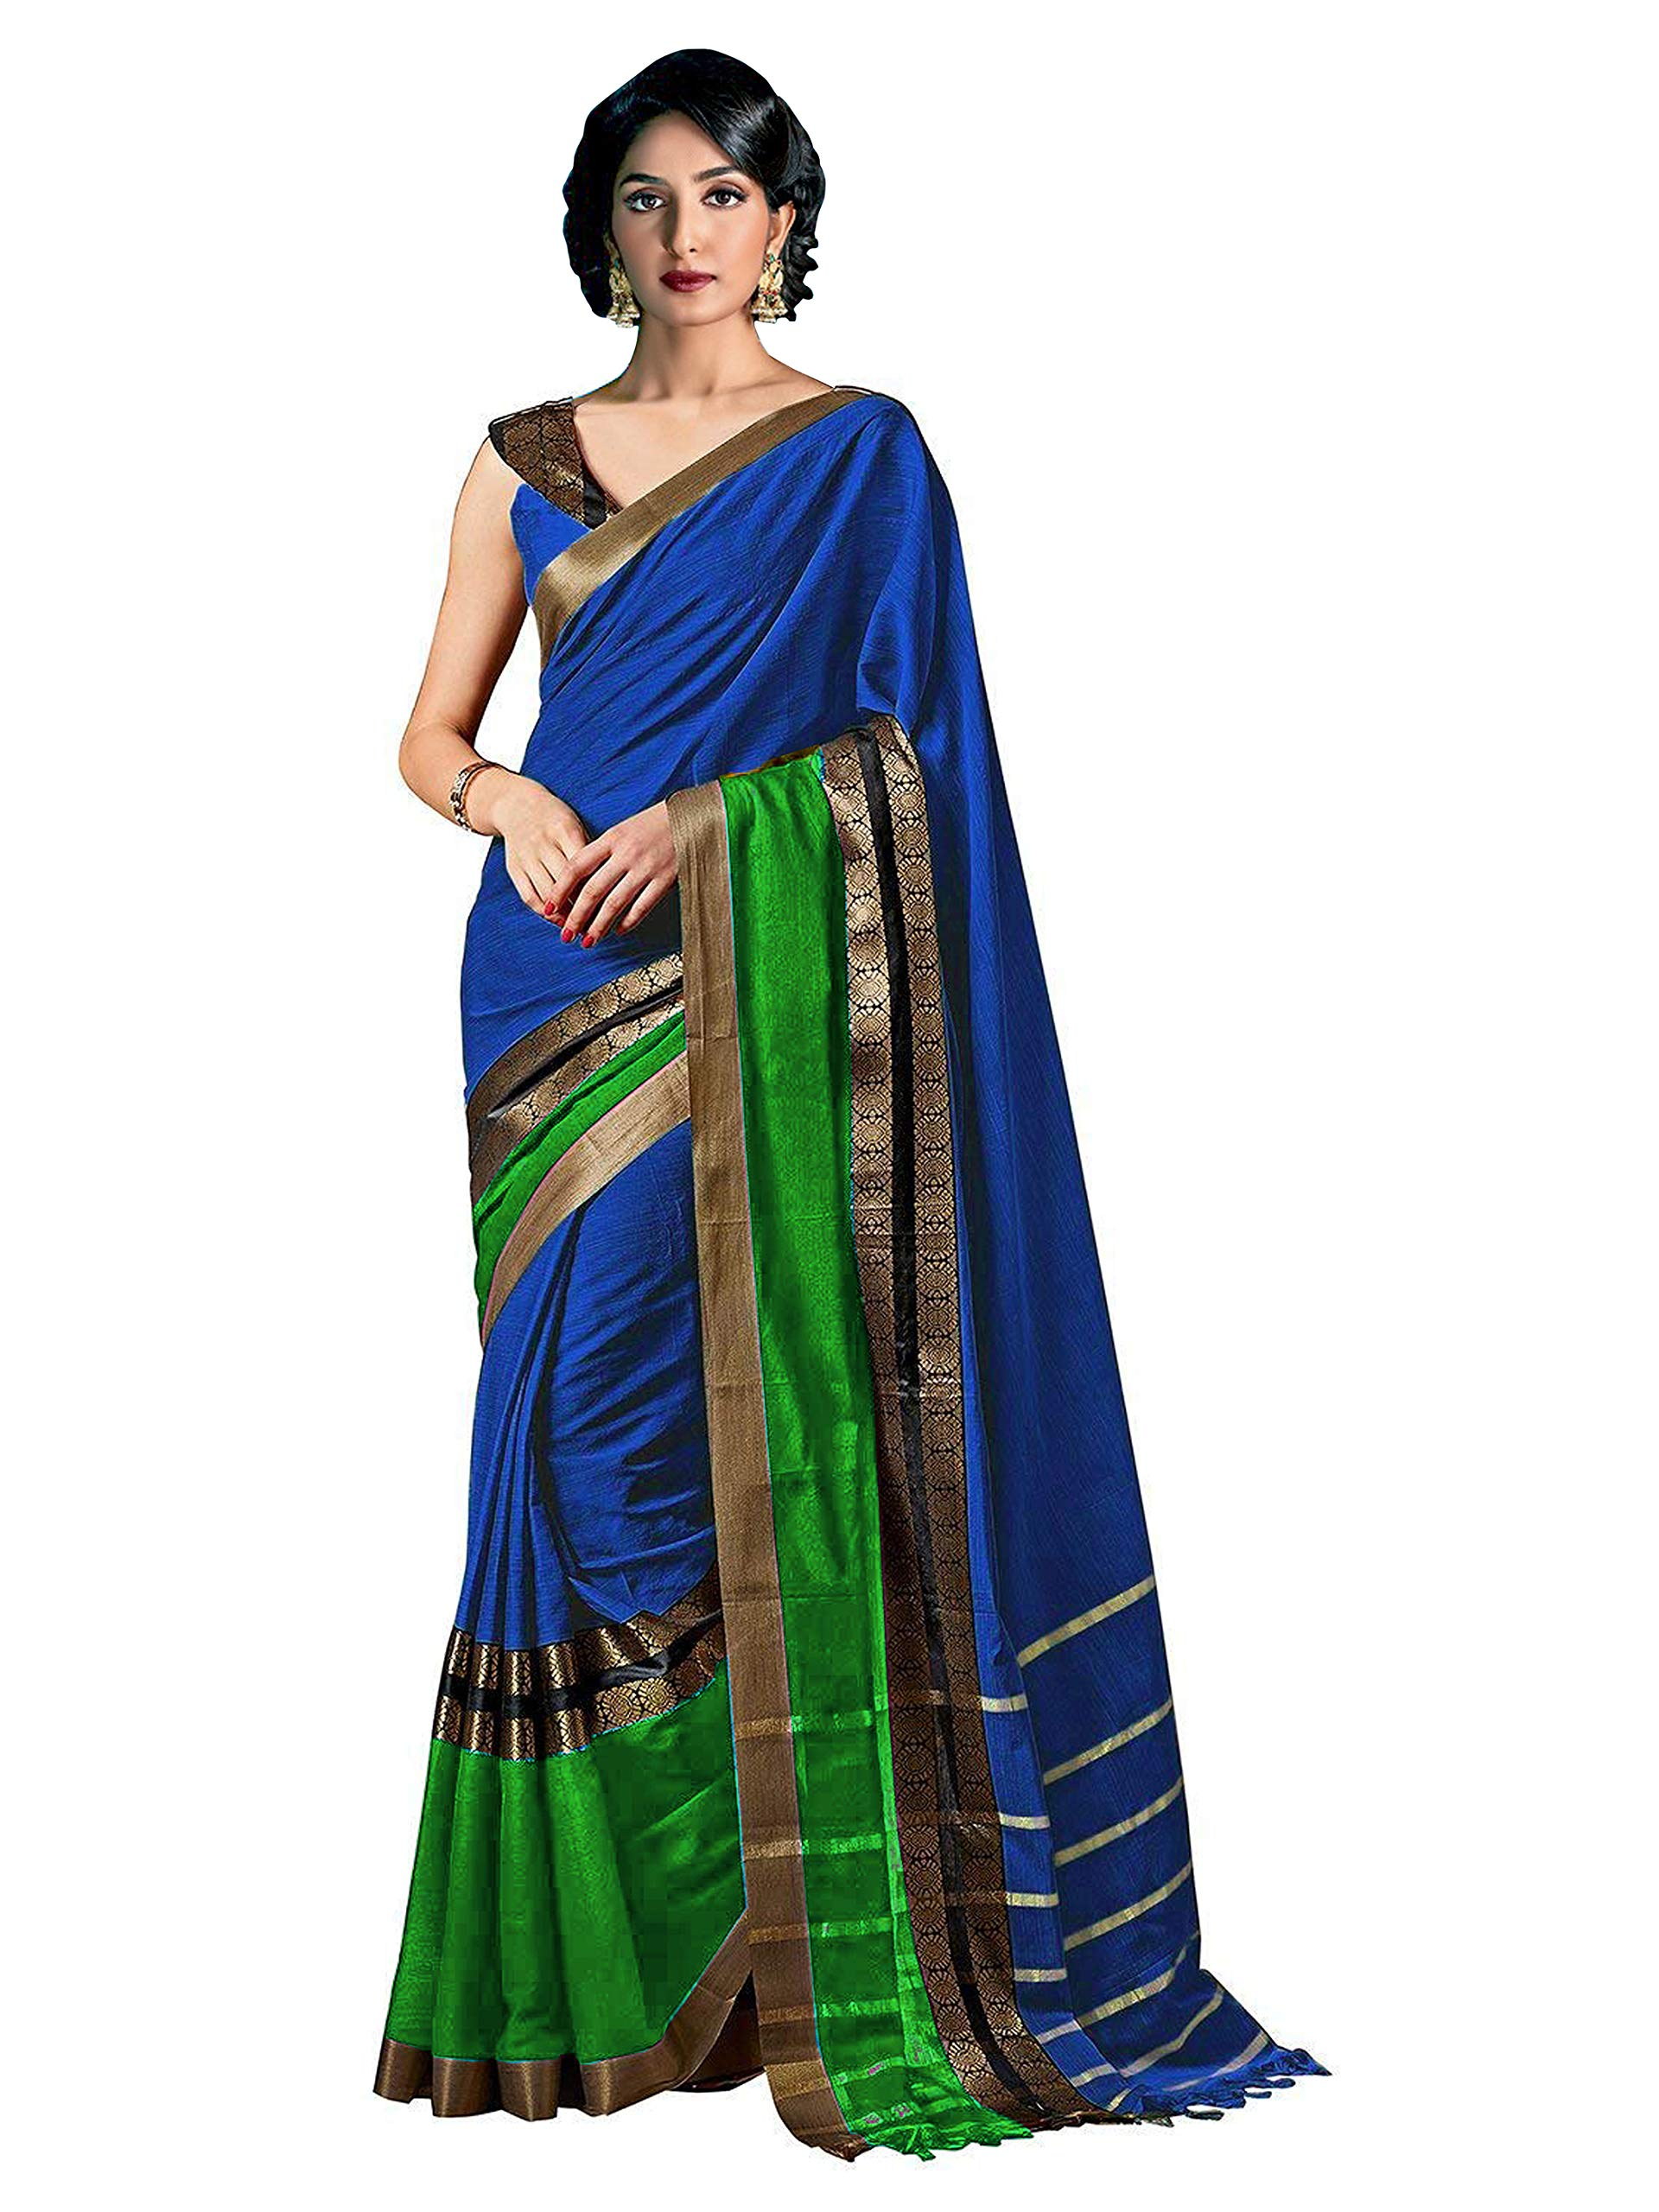 ELINA FASHION Sarees for Women Cotton Silk Woven Saree l Indian Wedding Gift Sari with Unstitched Blouse